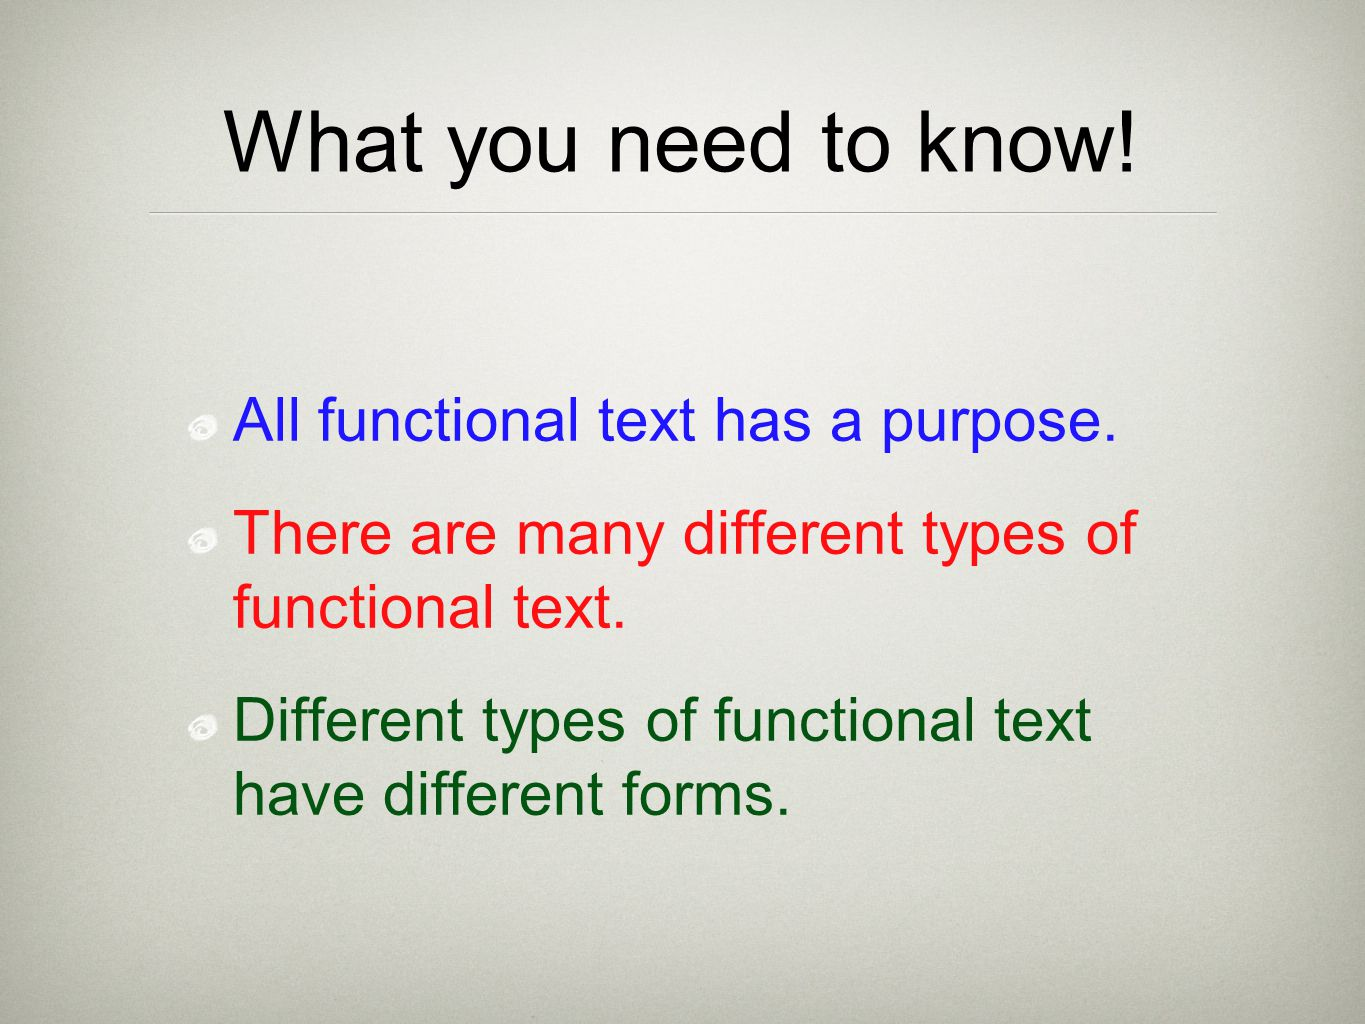 What you need to know. All functional text has a purpose.